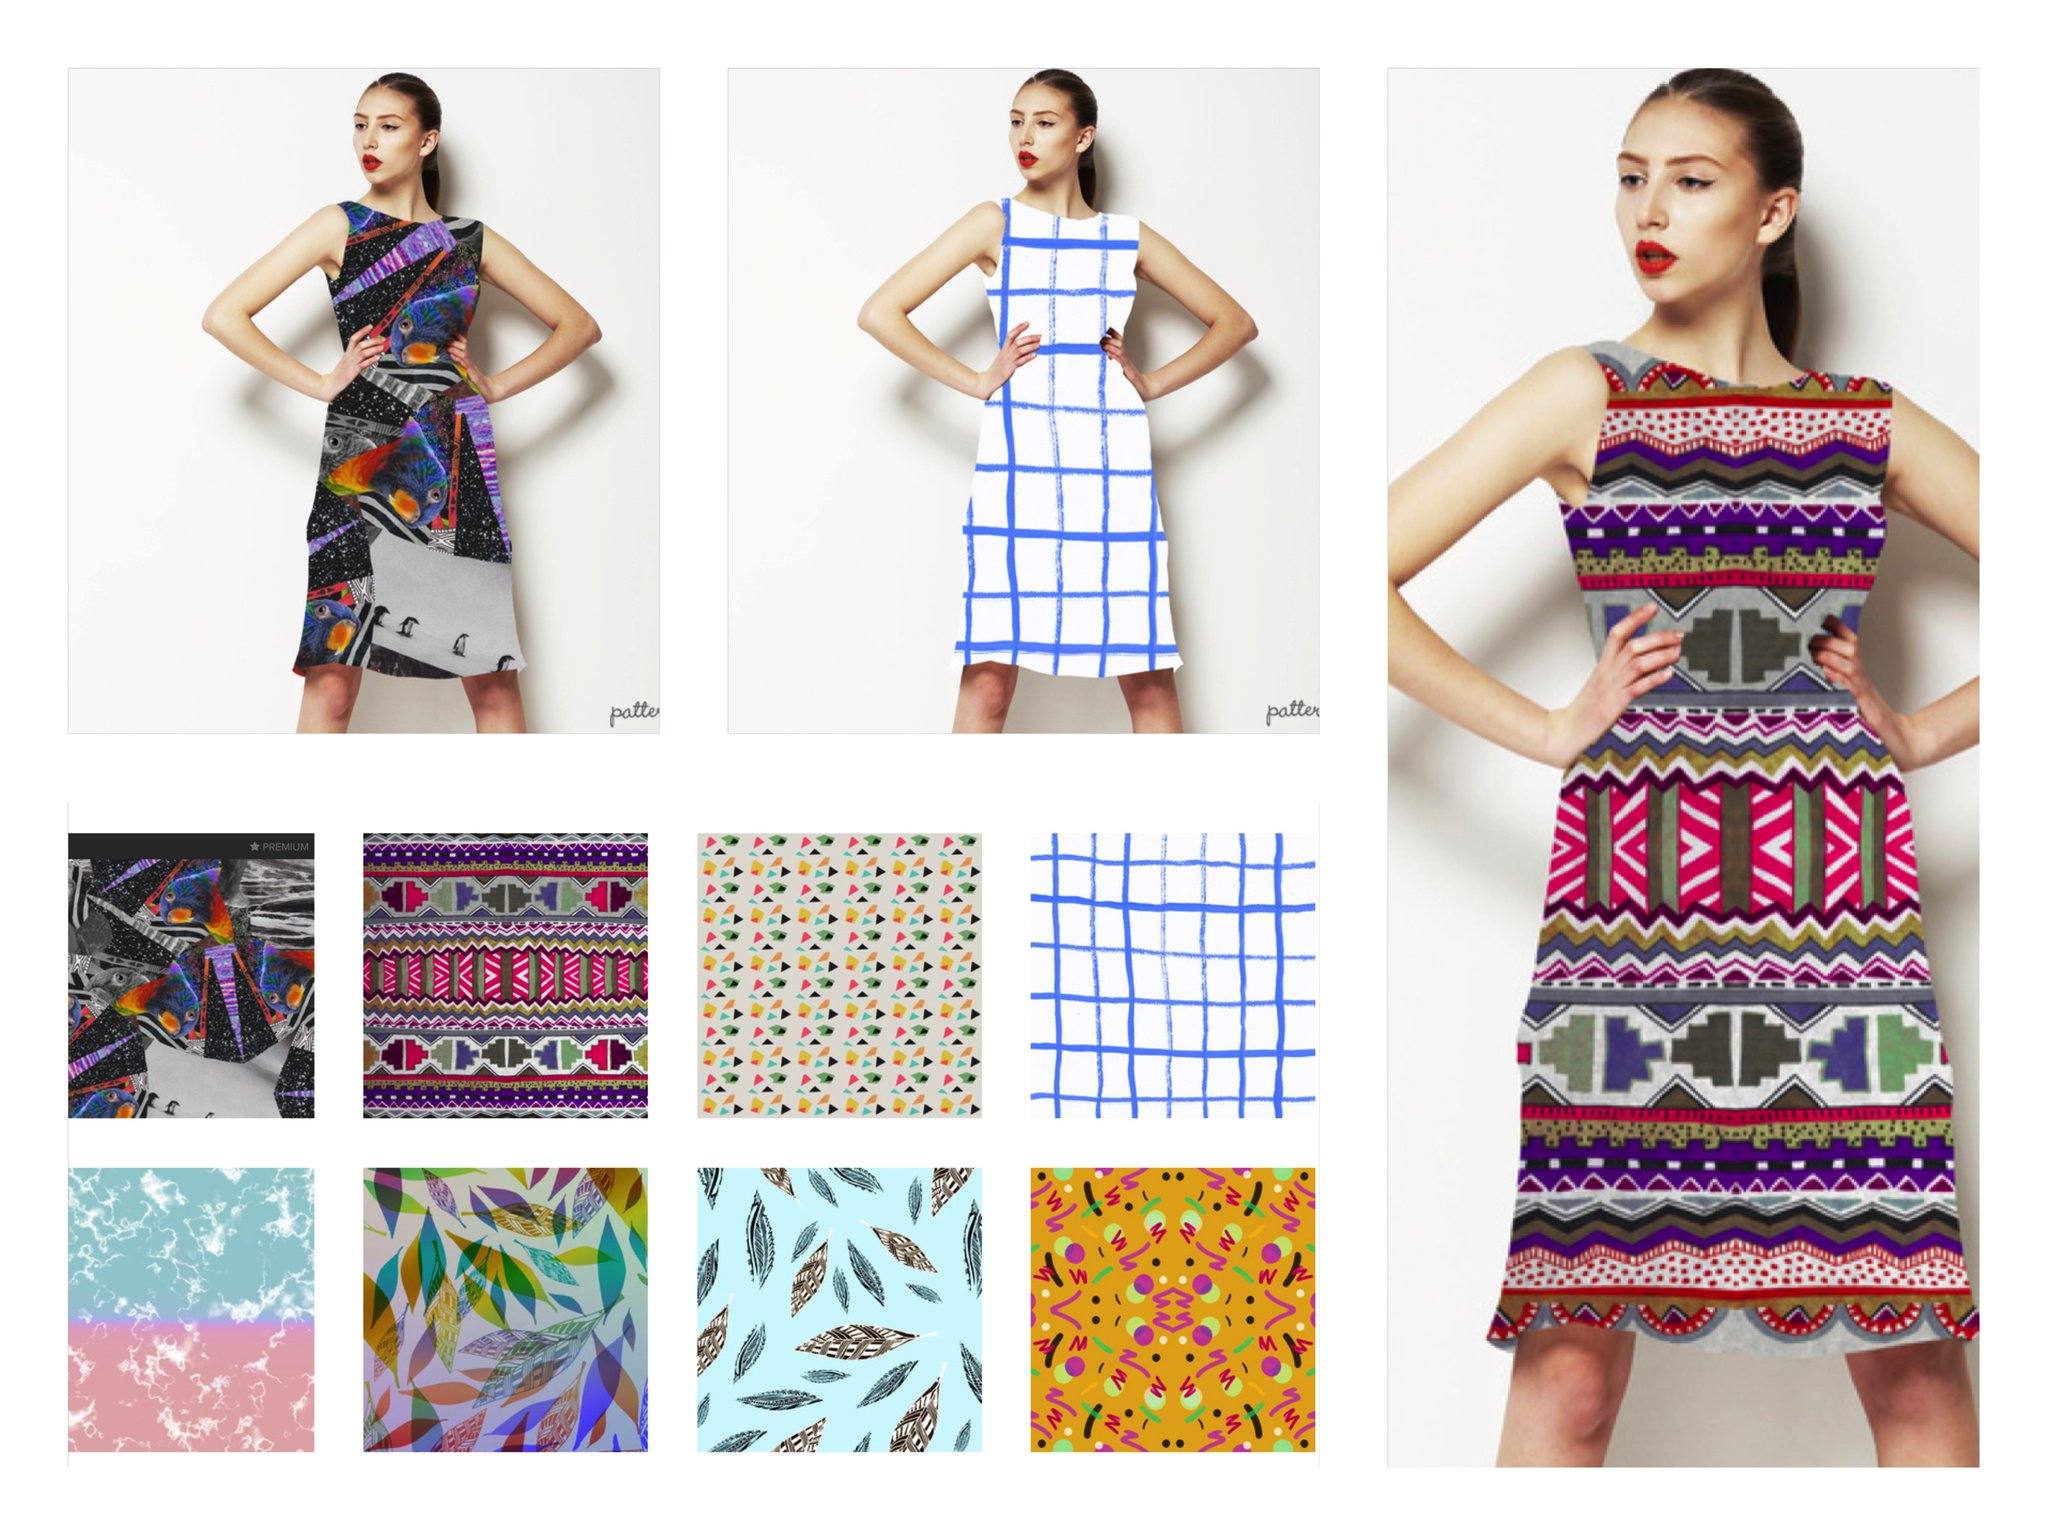 patternbank fashion textile art design illustration aztec tribal native